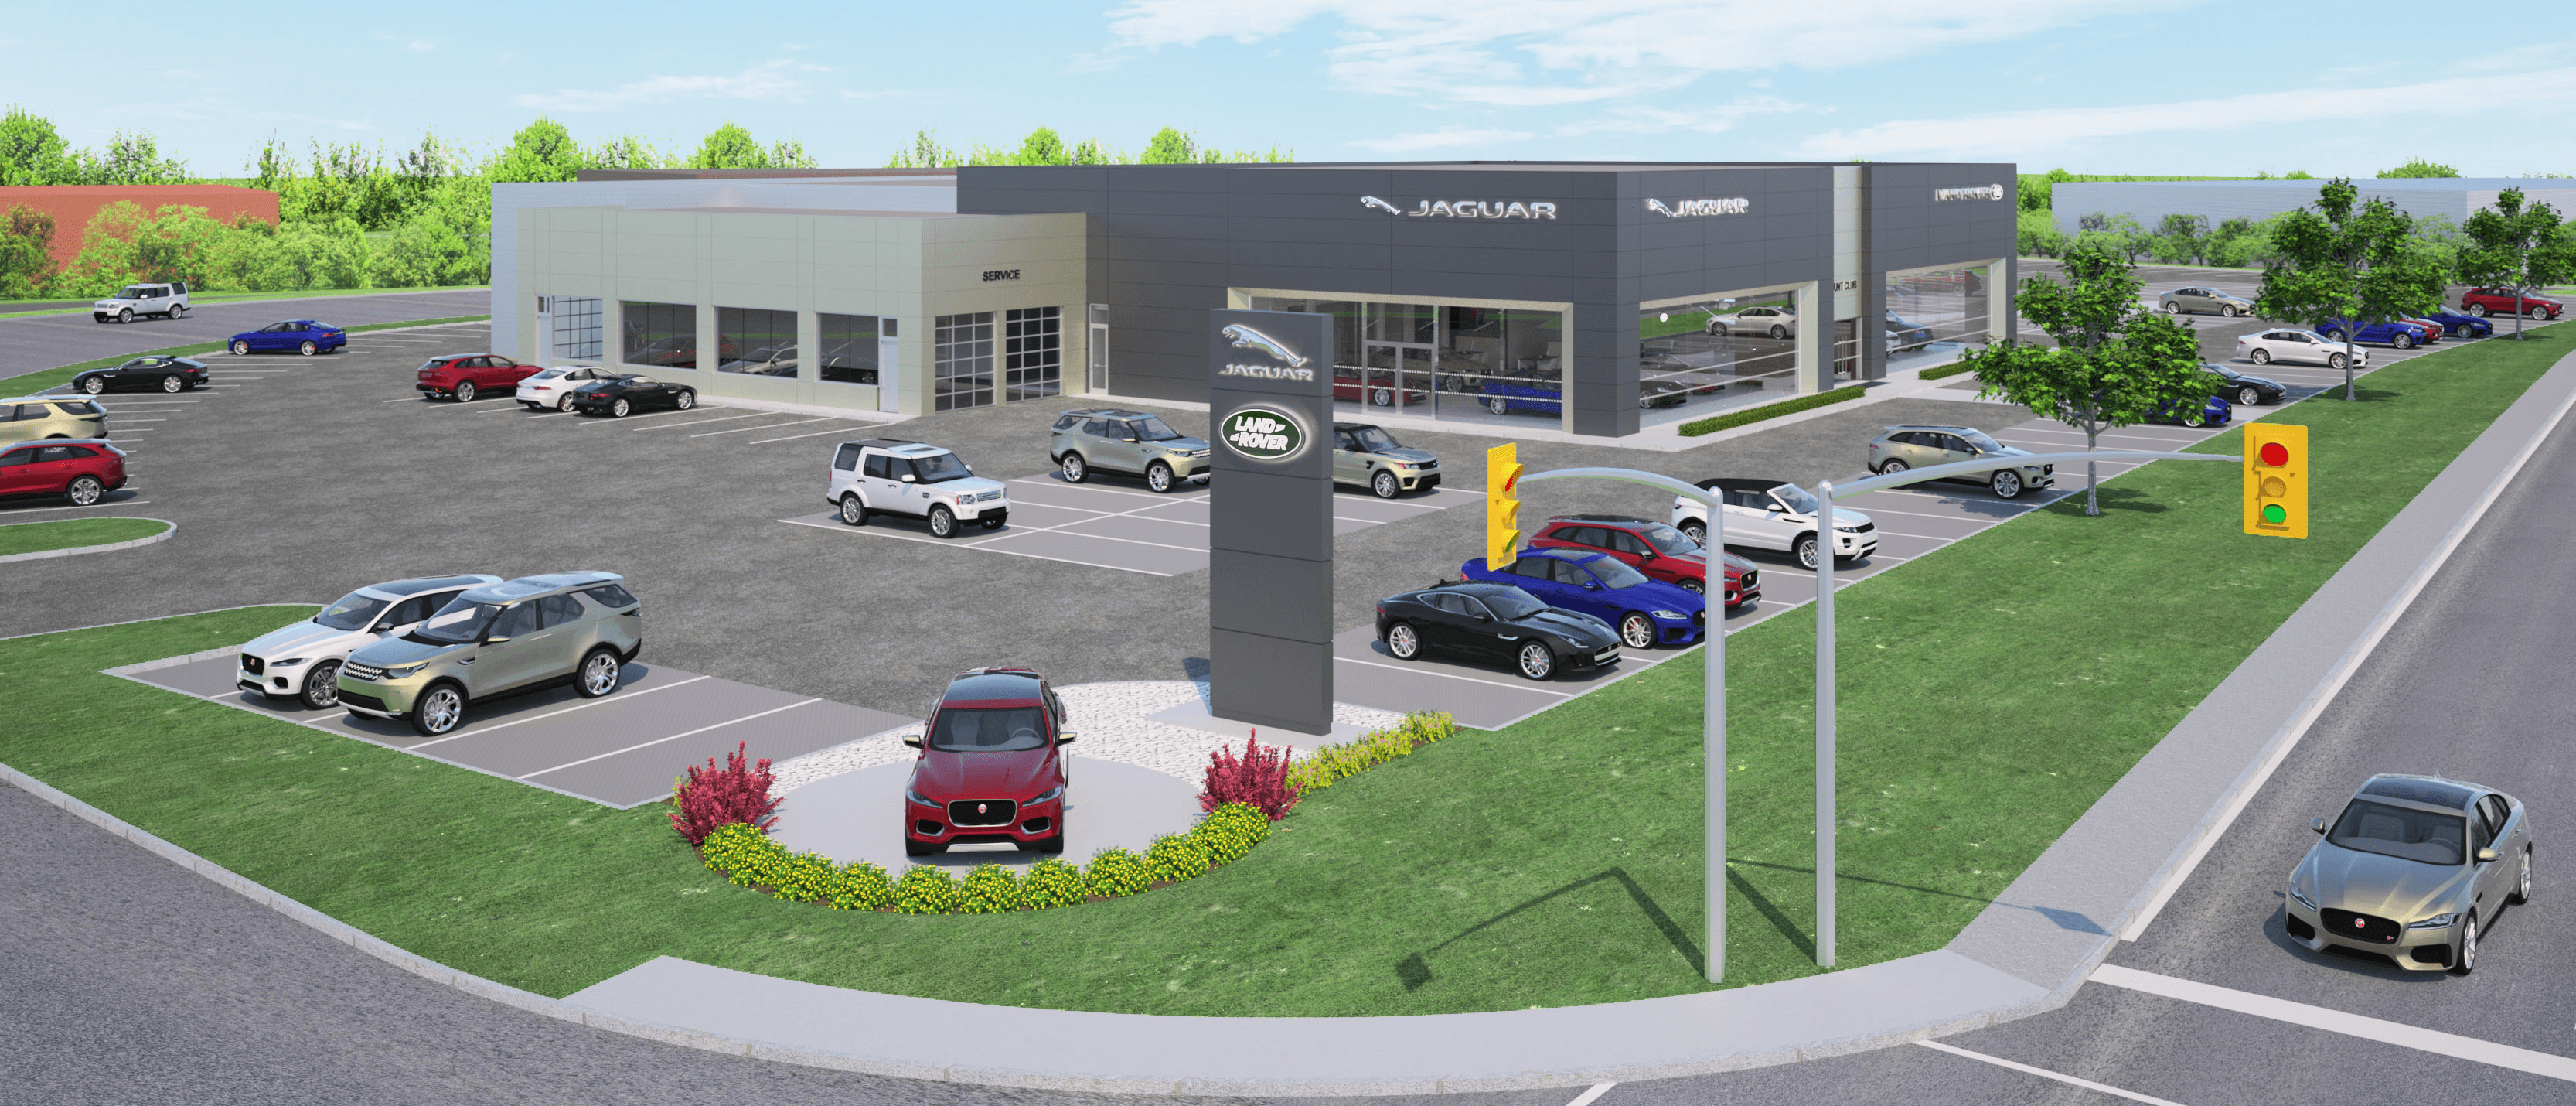 JLR Site Rendering (cropped)